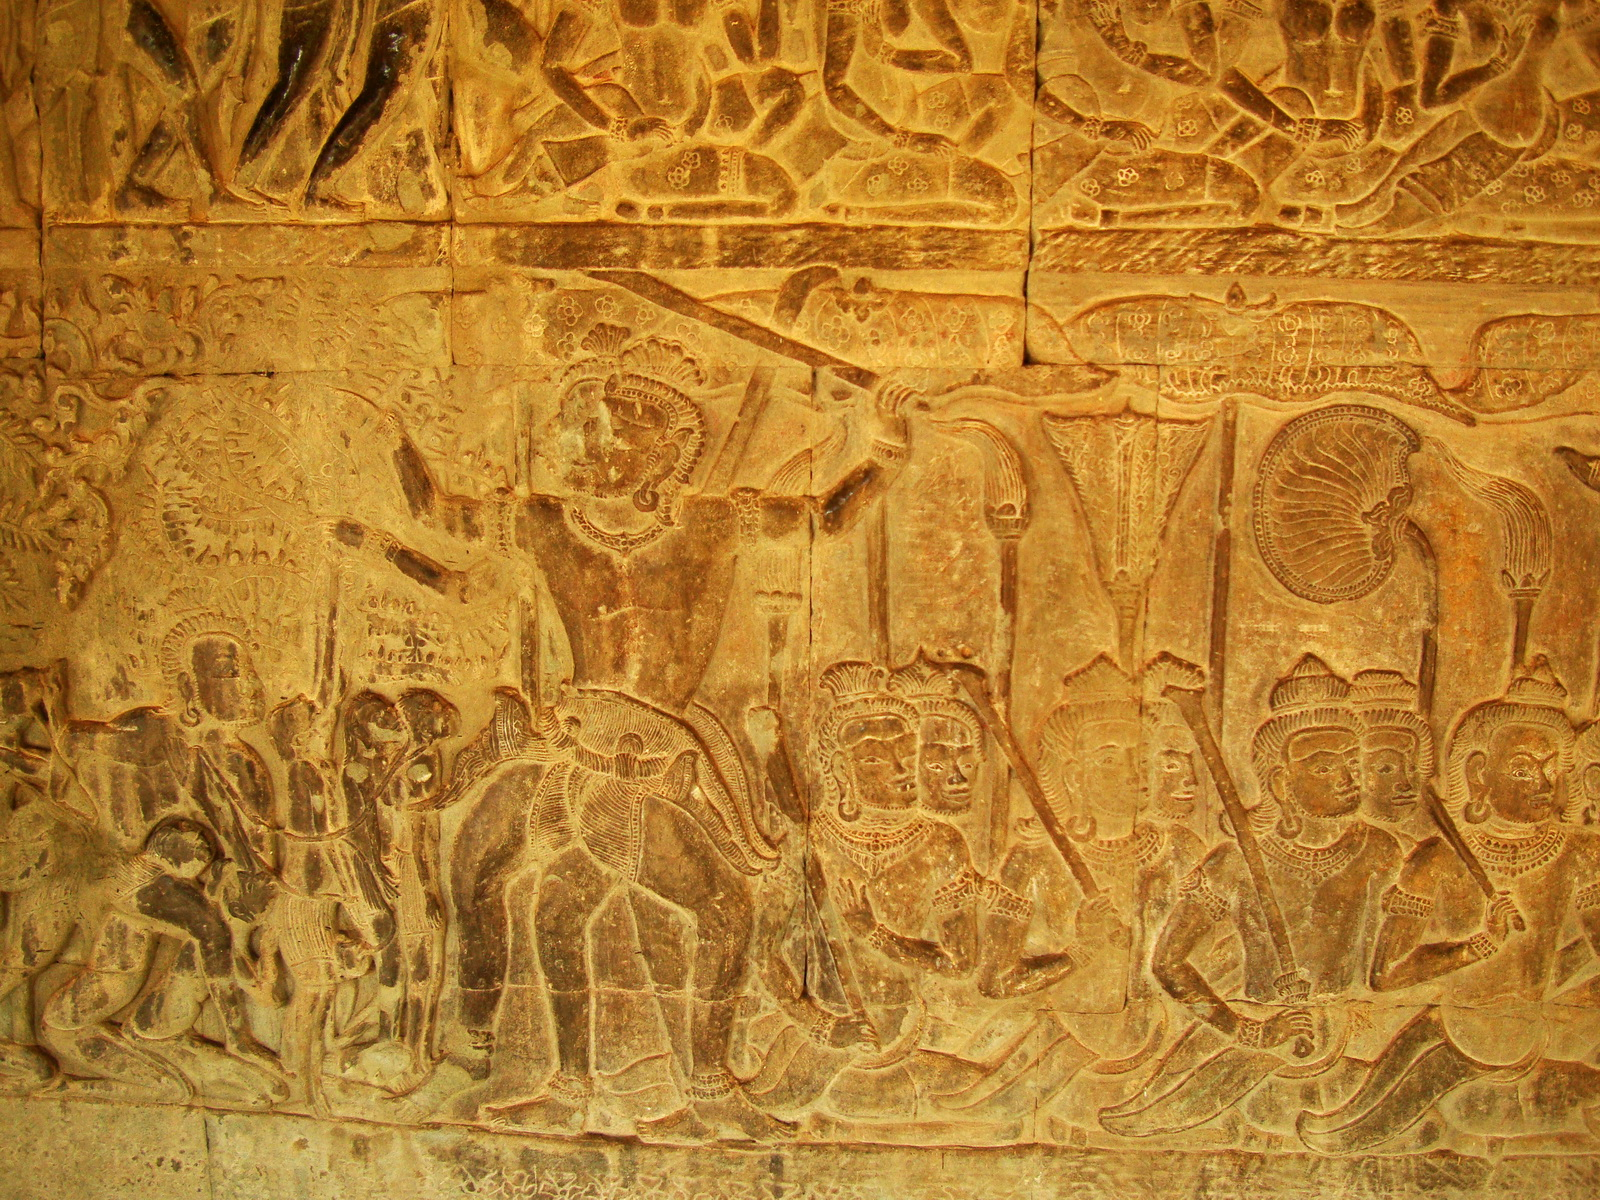 Angkor Wat Bas relief S Gallery E Wing Heavens and Hells 57